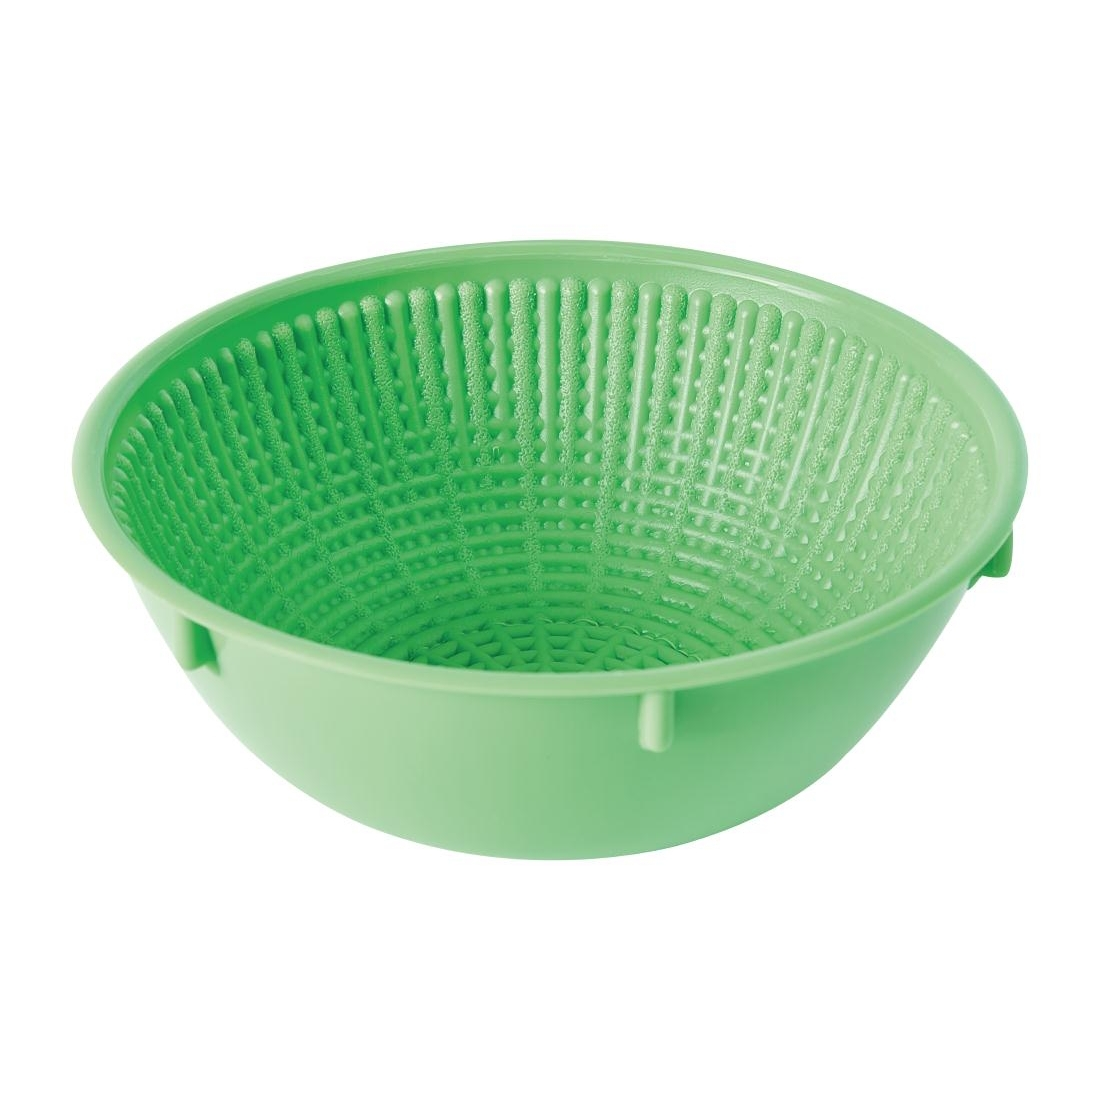 Schneider Round Bread Proofing Basket 500g